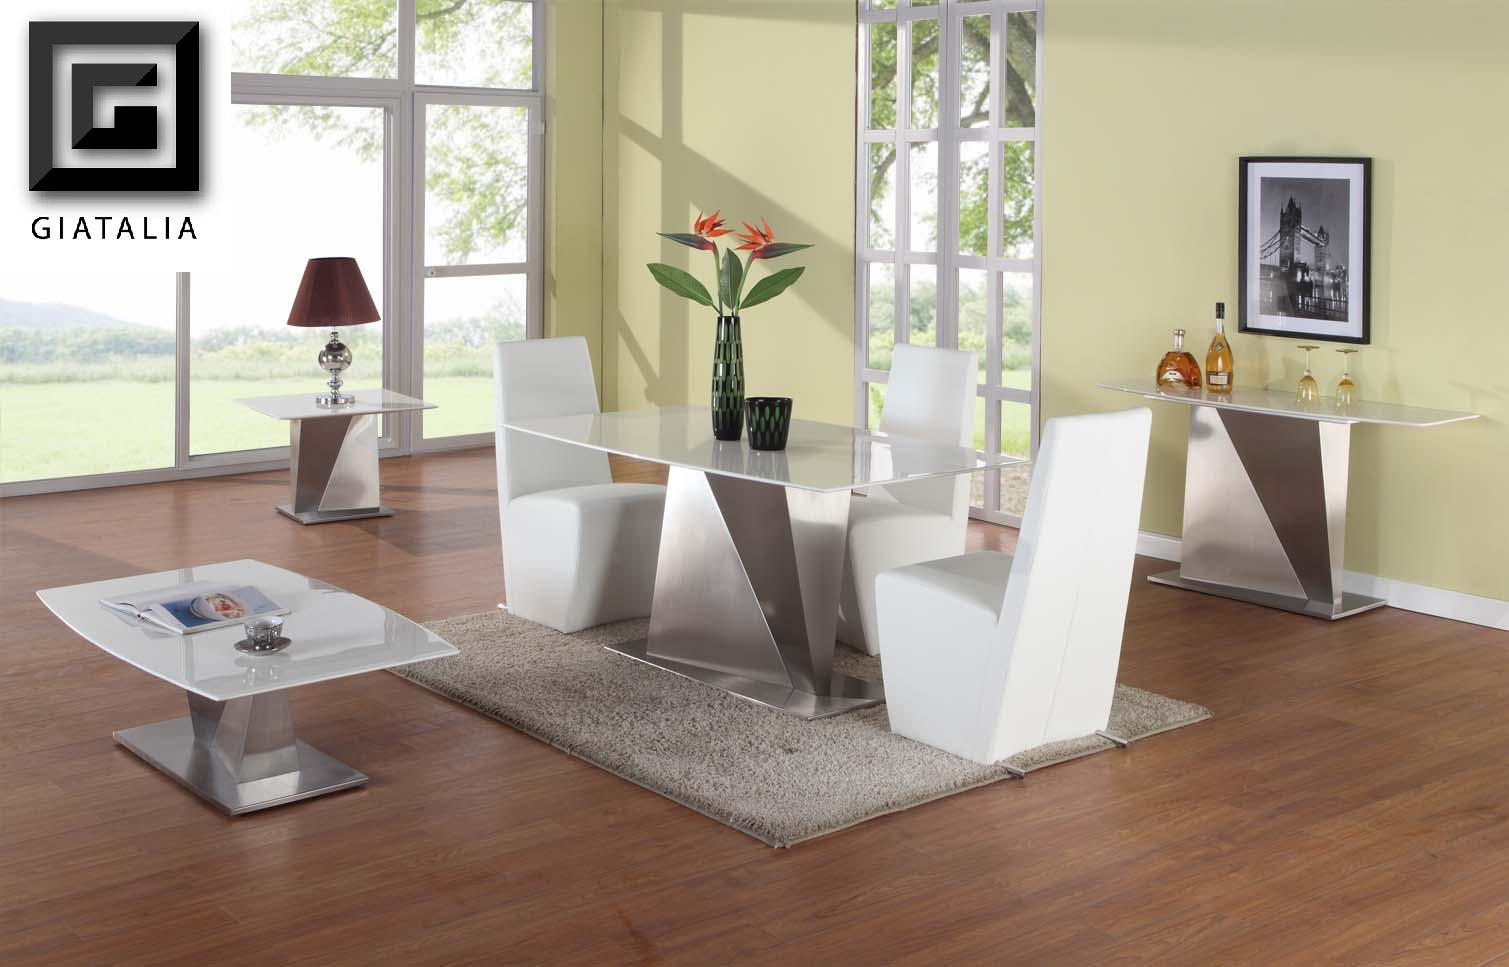 Marble Dining Room Sets Remarkable Dining Tables Marble 312575 Home Design Ideas Marble